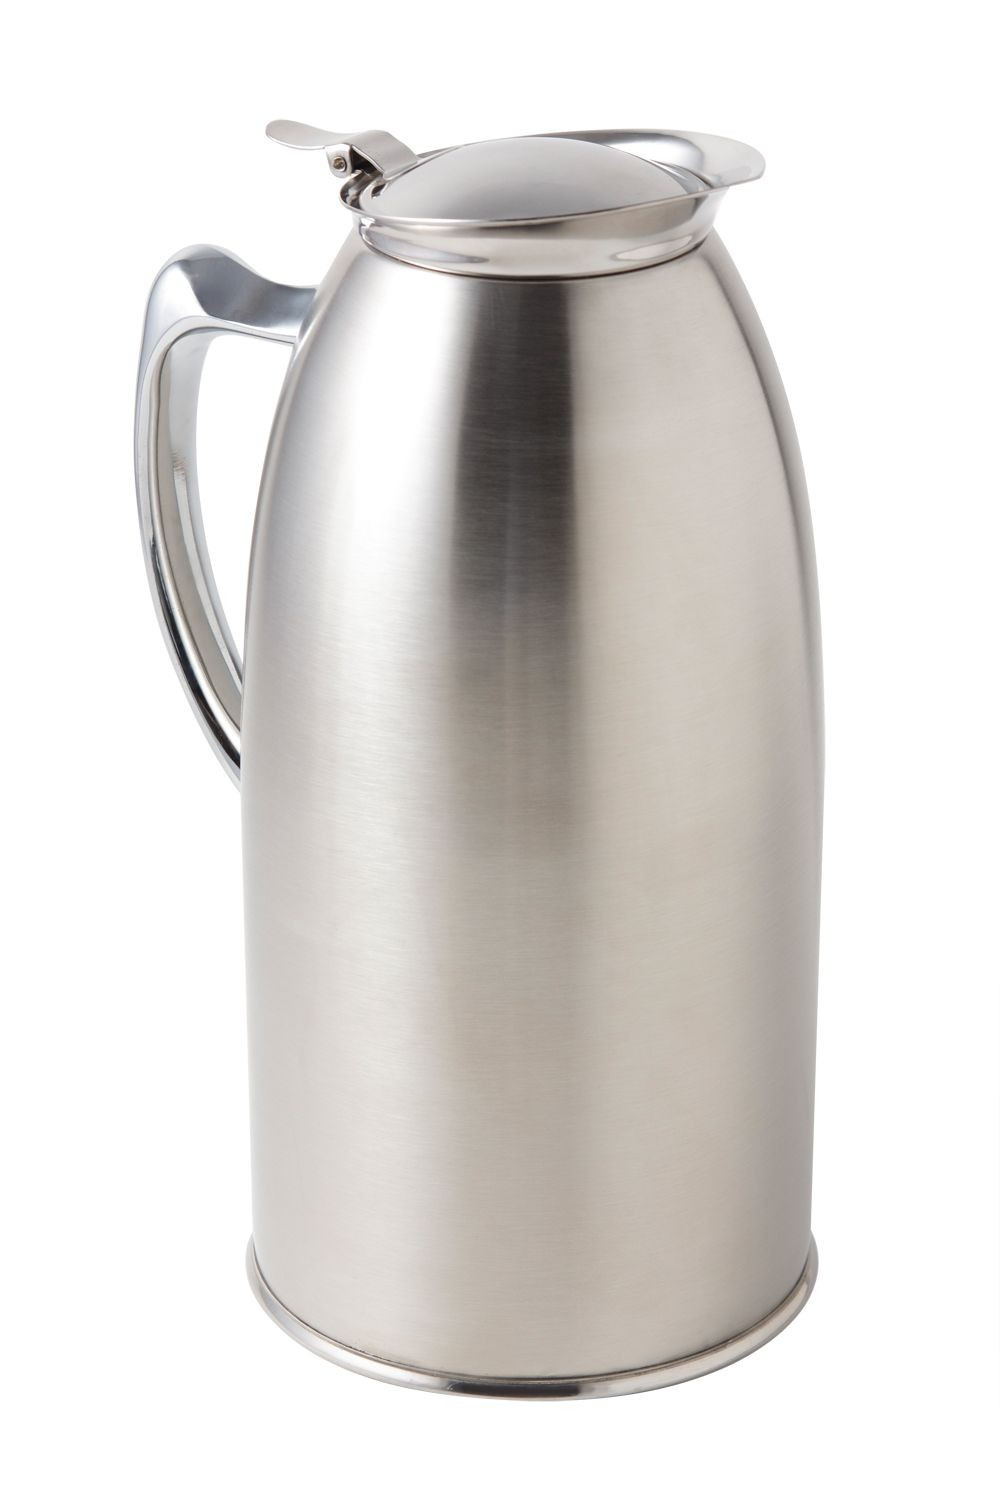 Bon Chef 4053 Stainless Steel Insulated Server with Satin Finish, 64 oz., Set of 6